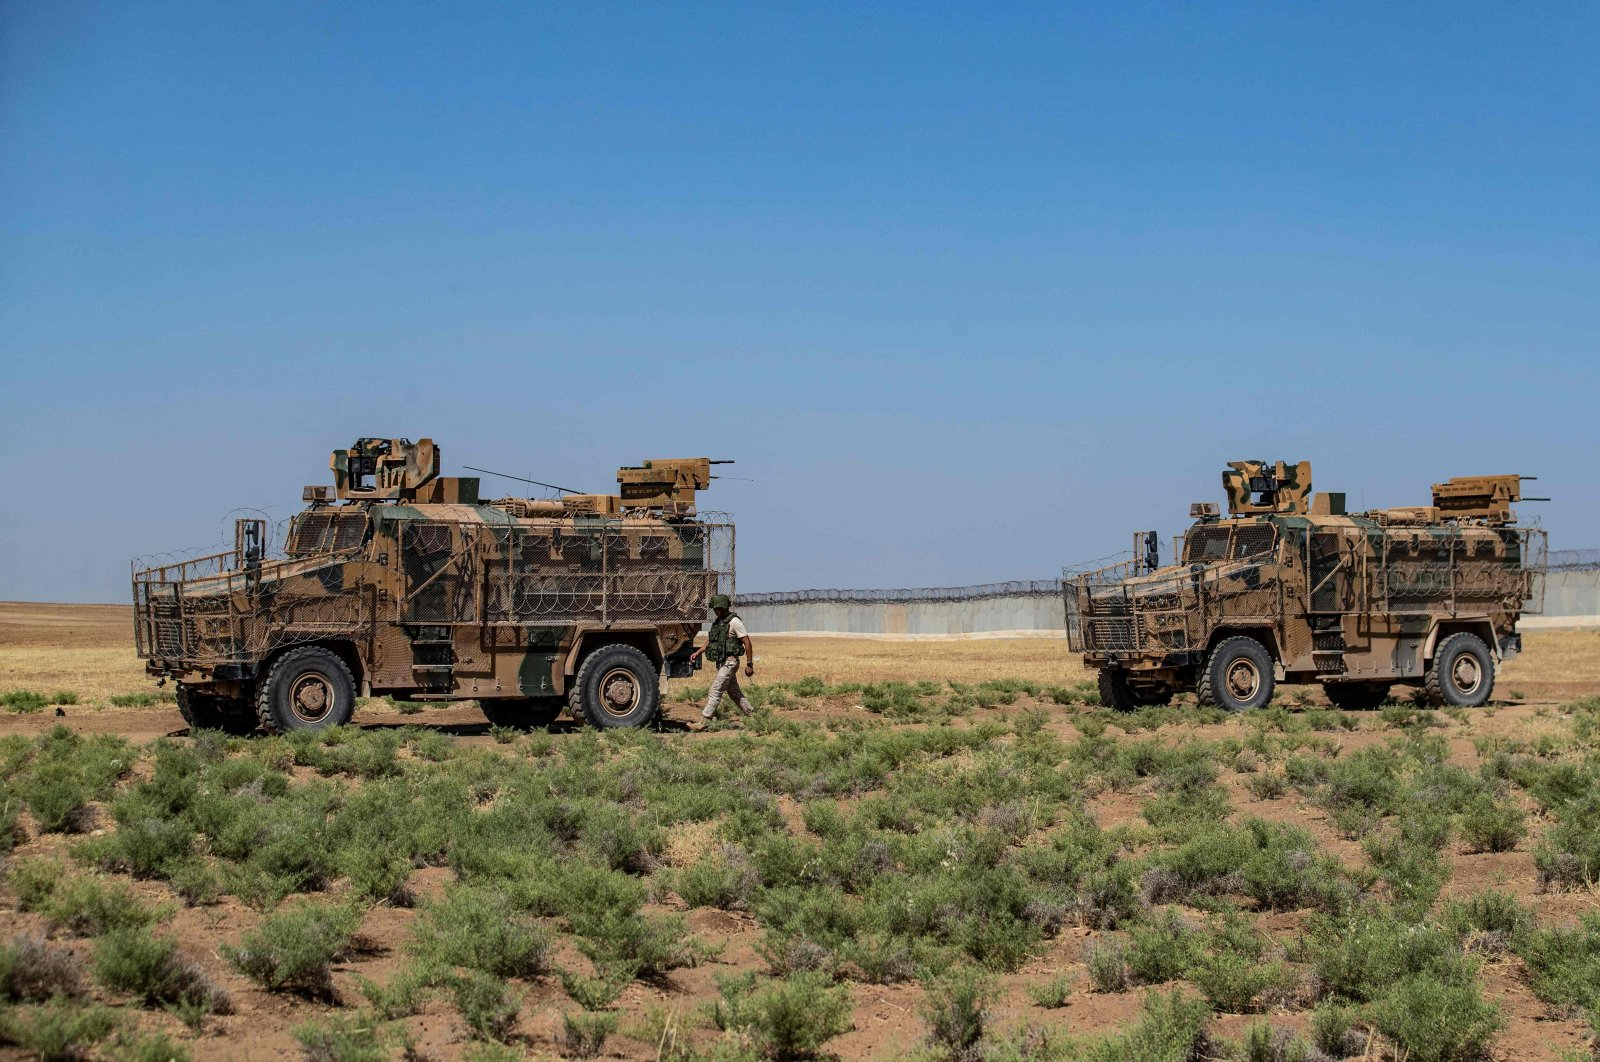 Turkish military vehicles are pictured during a joint patrol with Russian troops (unseen) in the countryside in Syria's northeastern Hassakeh province, on the border with Turkey, on July 14, 2021. (Photo by Delil SOULEIMAN / AFP)